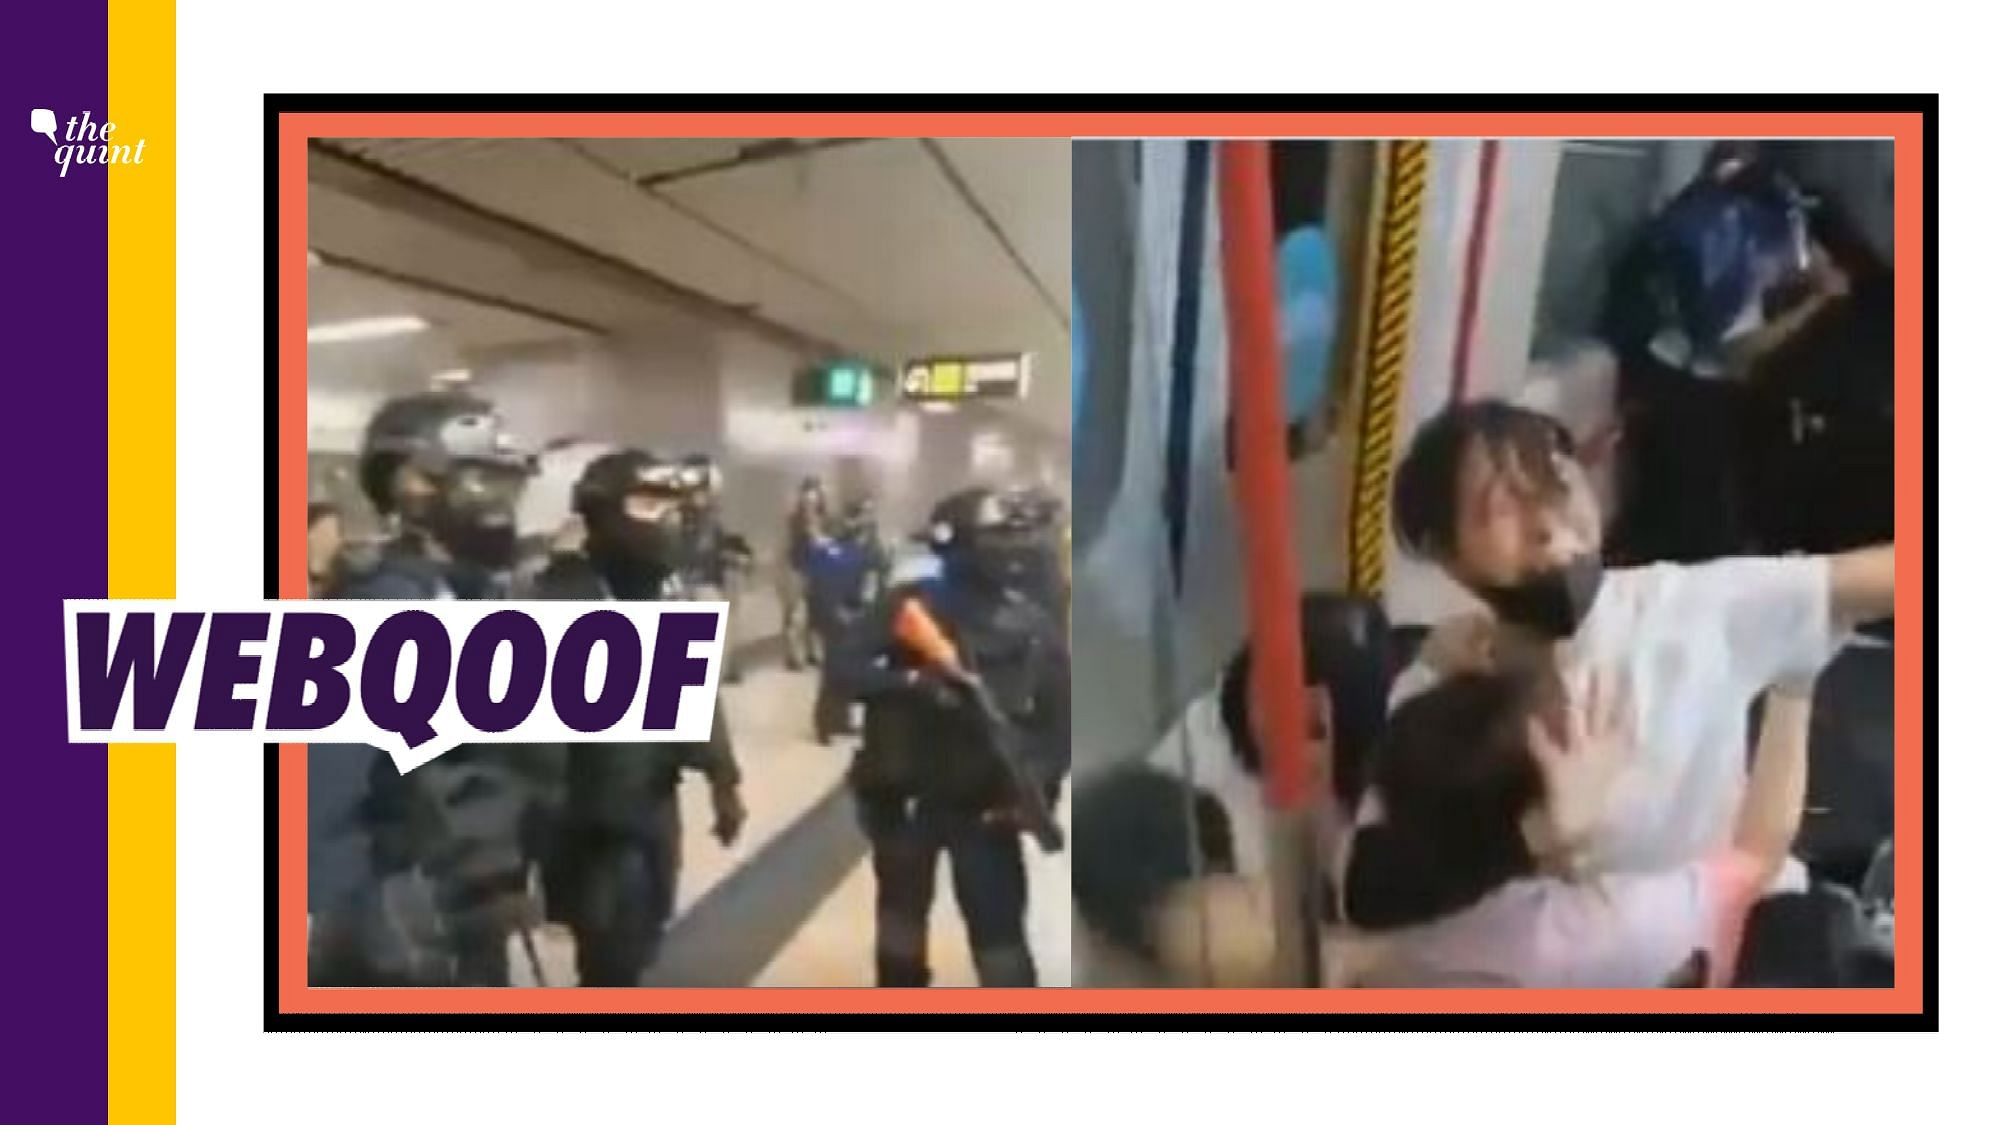 The incident took place at Prince Edward Station in Kowloon, Hong Kong.